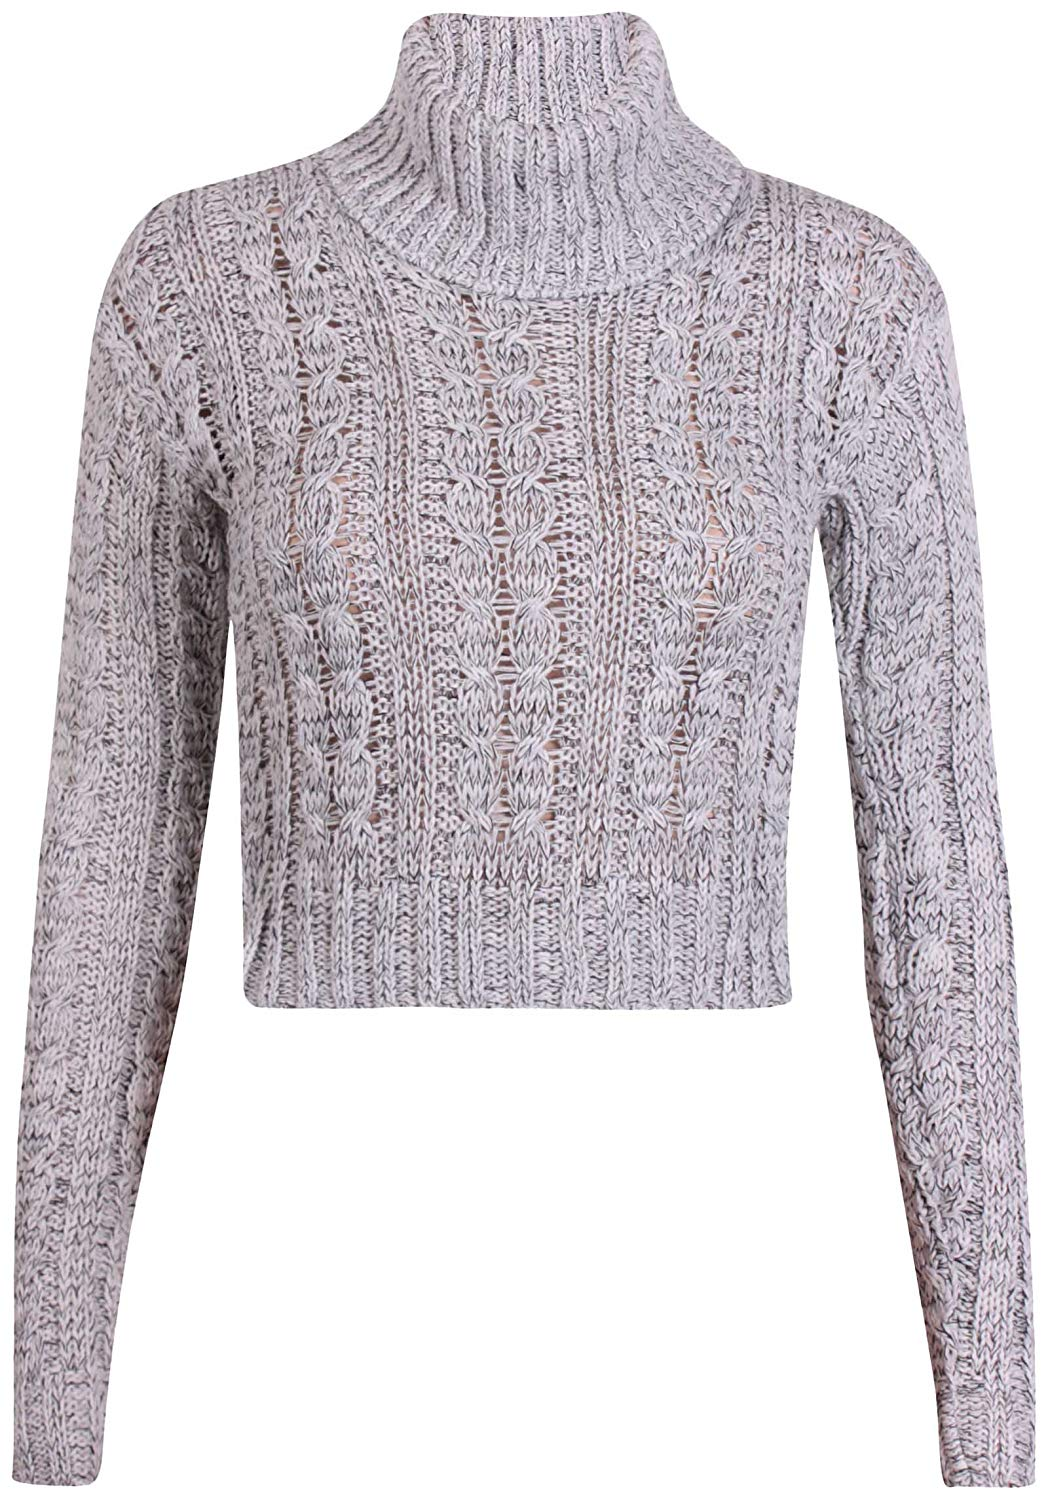 Cheap Cable Knit Sweater Womens Find Cable Knit Sweater Womens